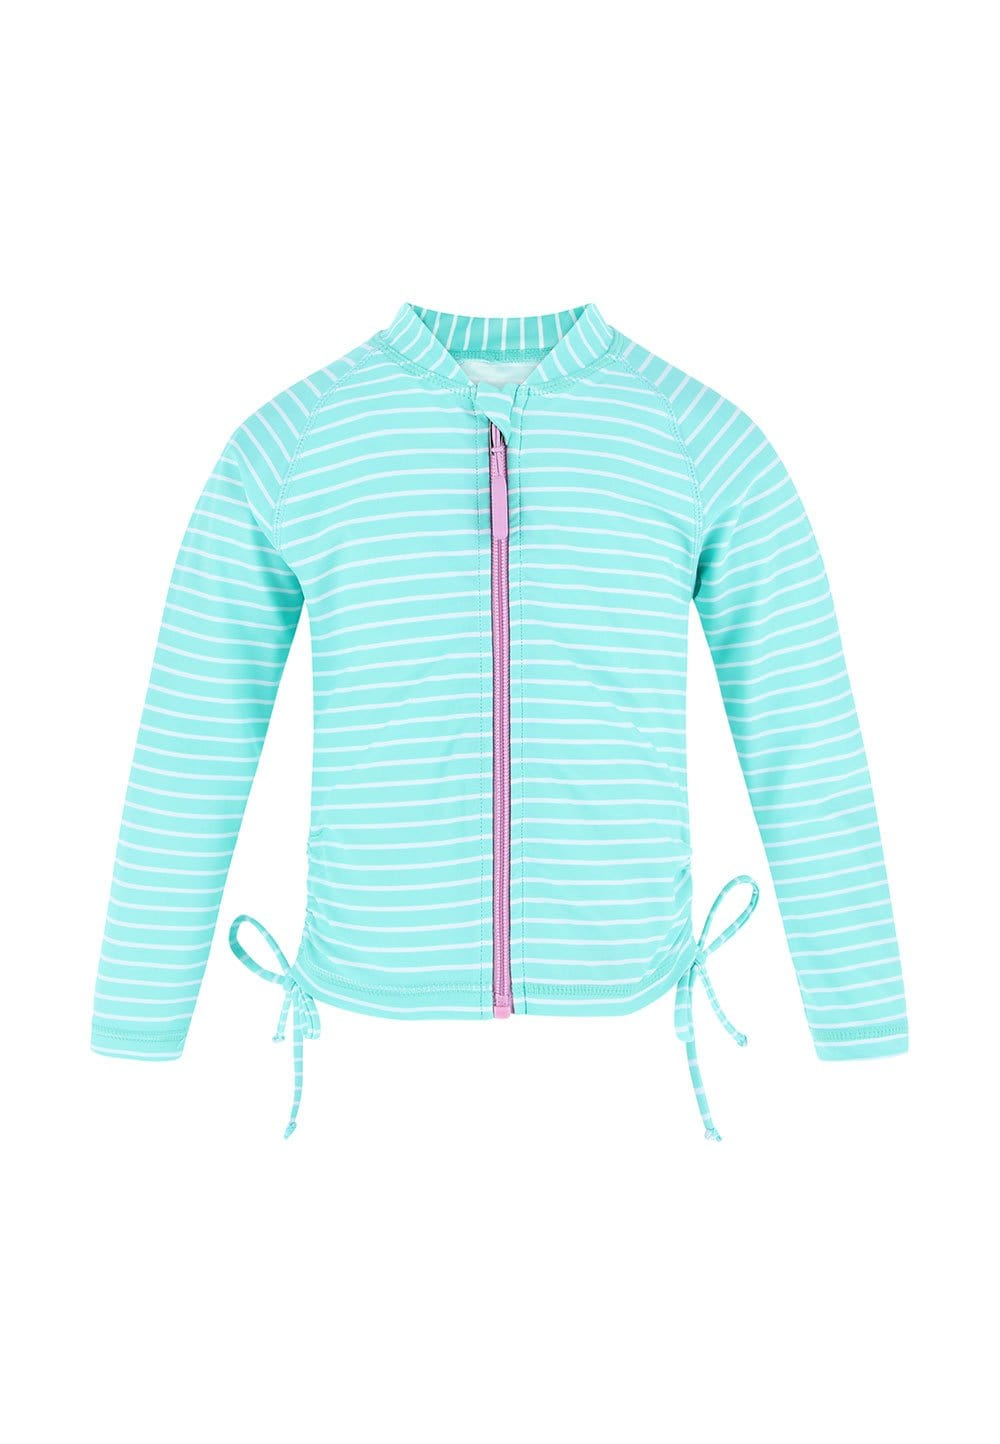 UPF50+ Junior Rash Top (Unisex) in Bubblegum Print